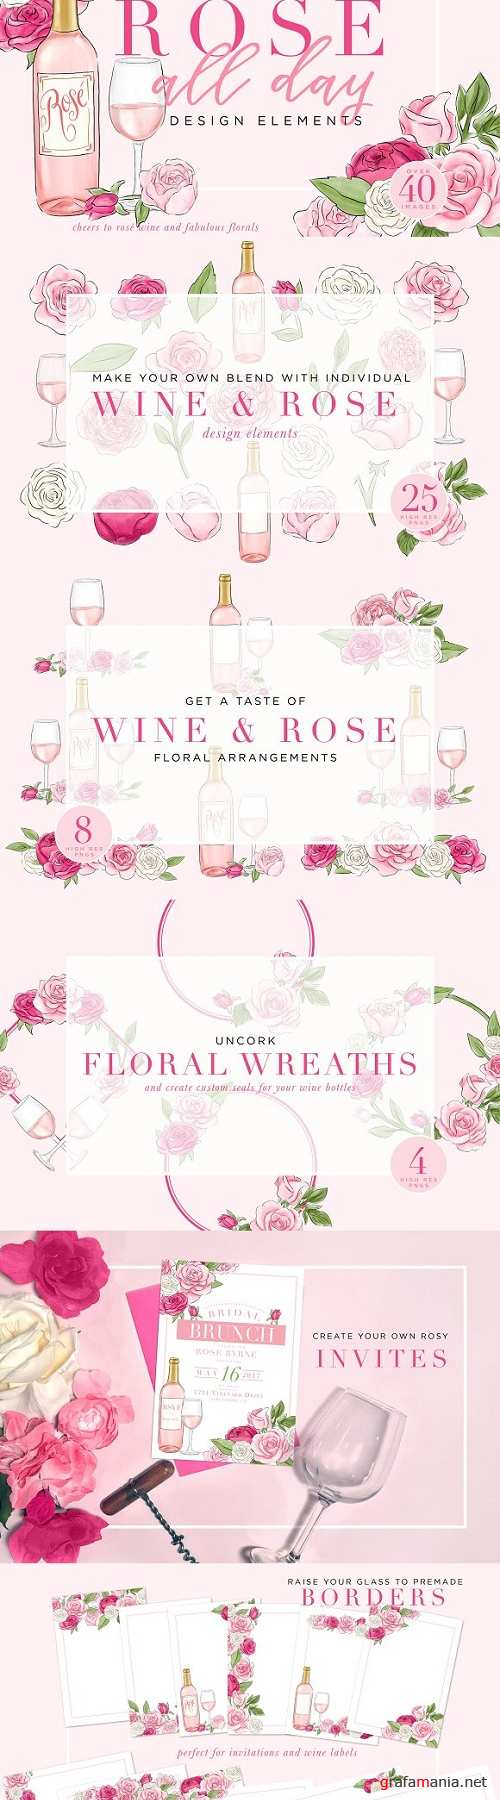 Rose All Day Design Elements - 1470788